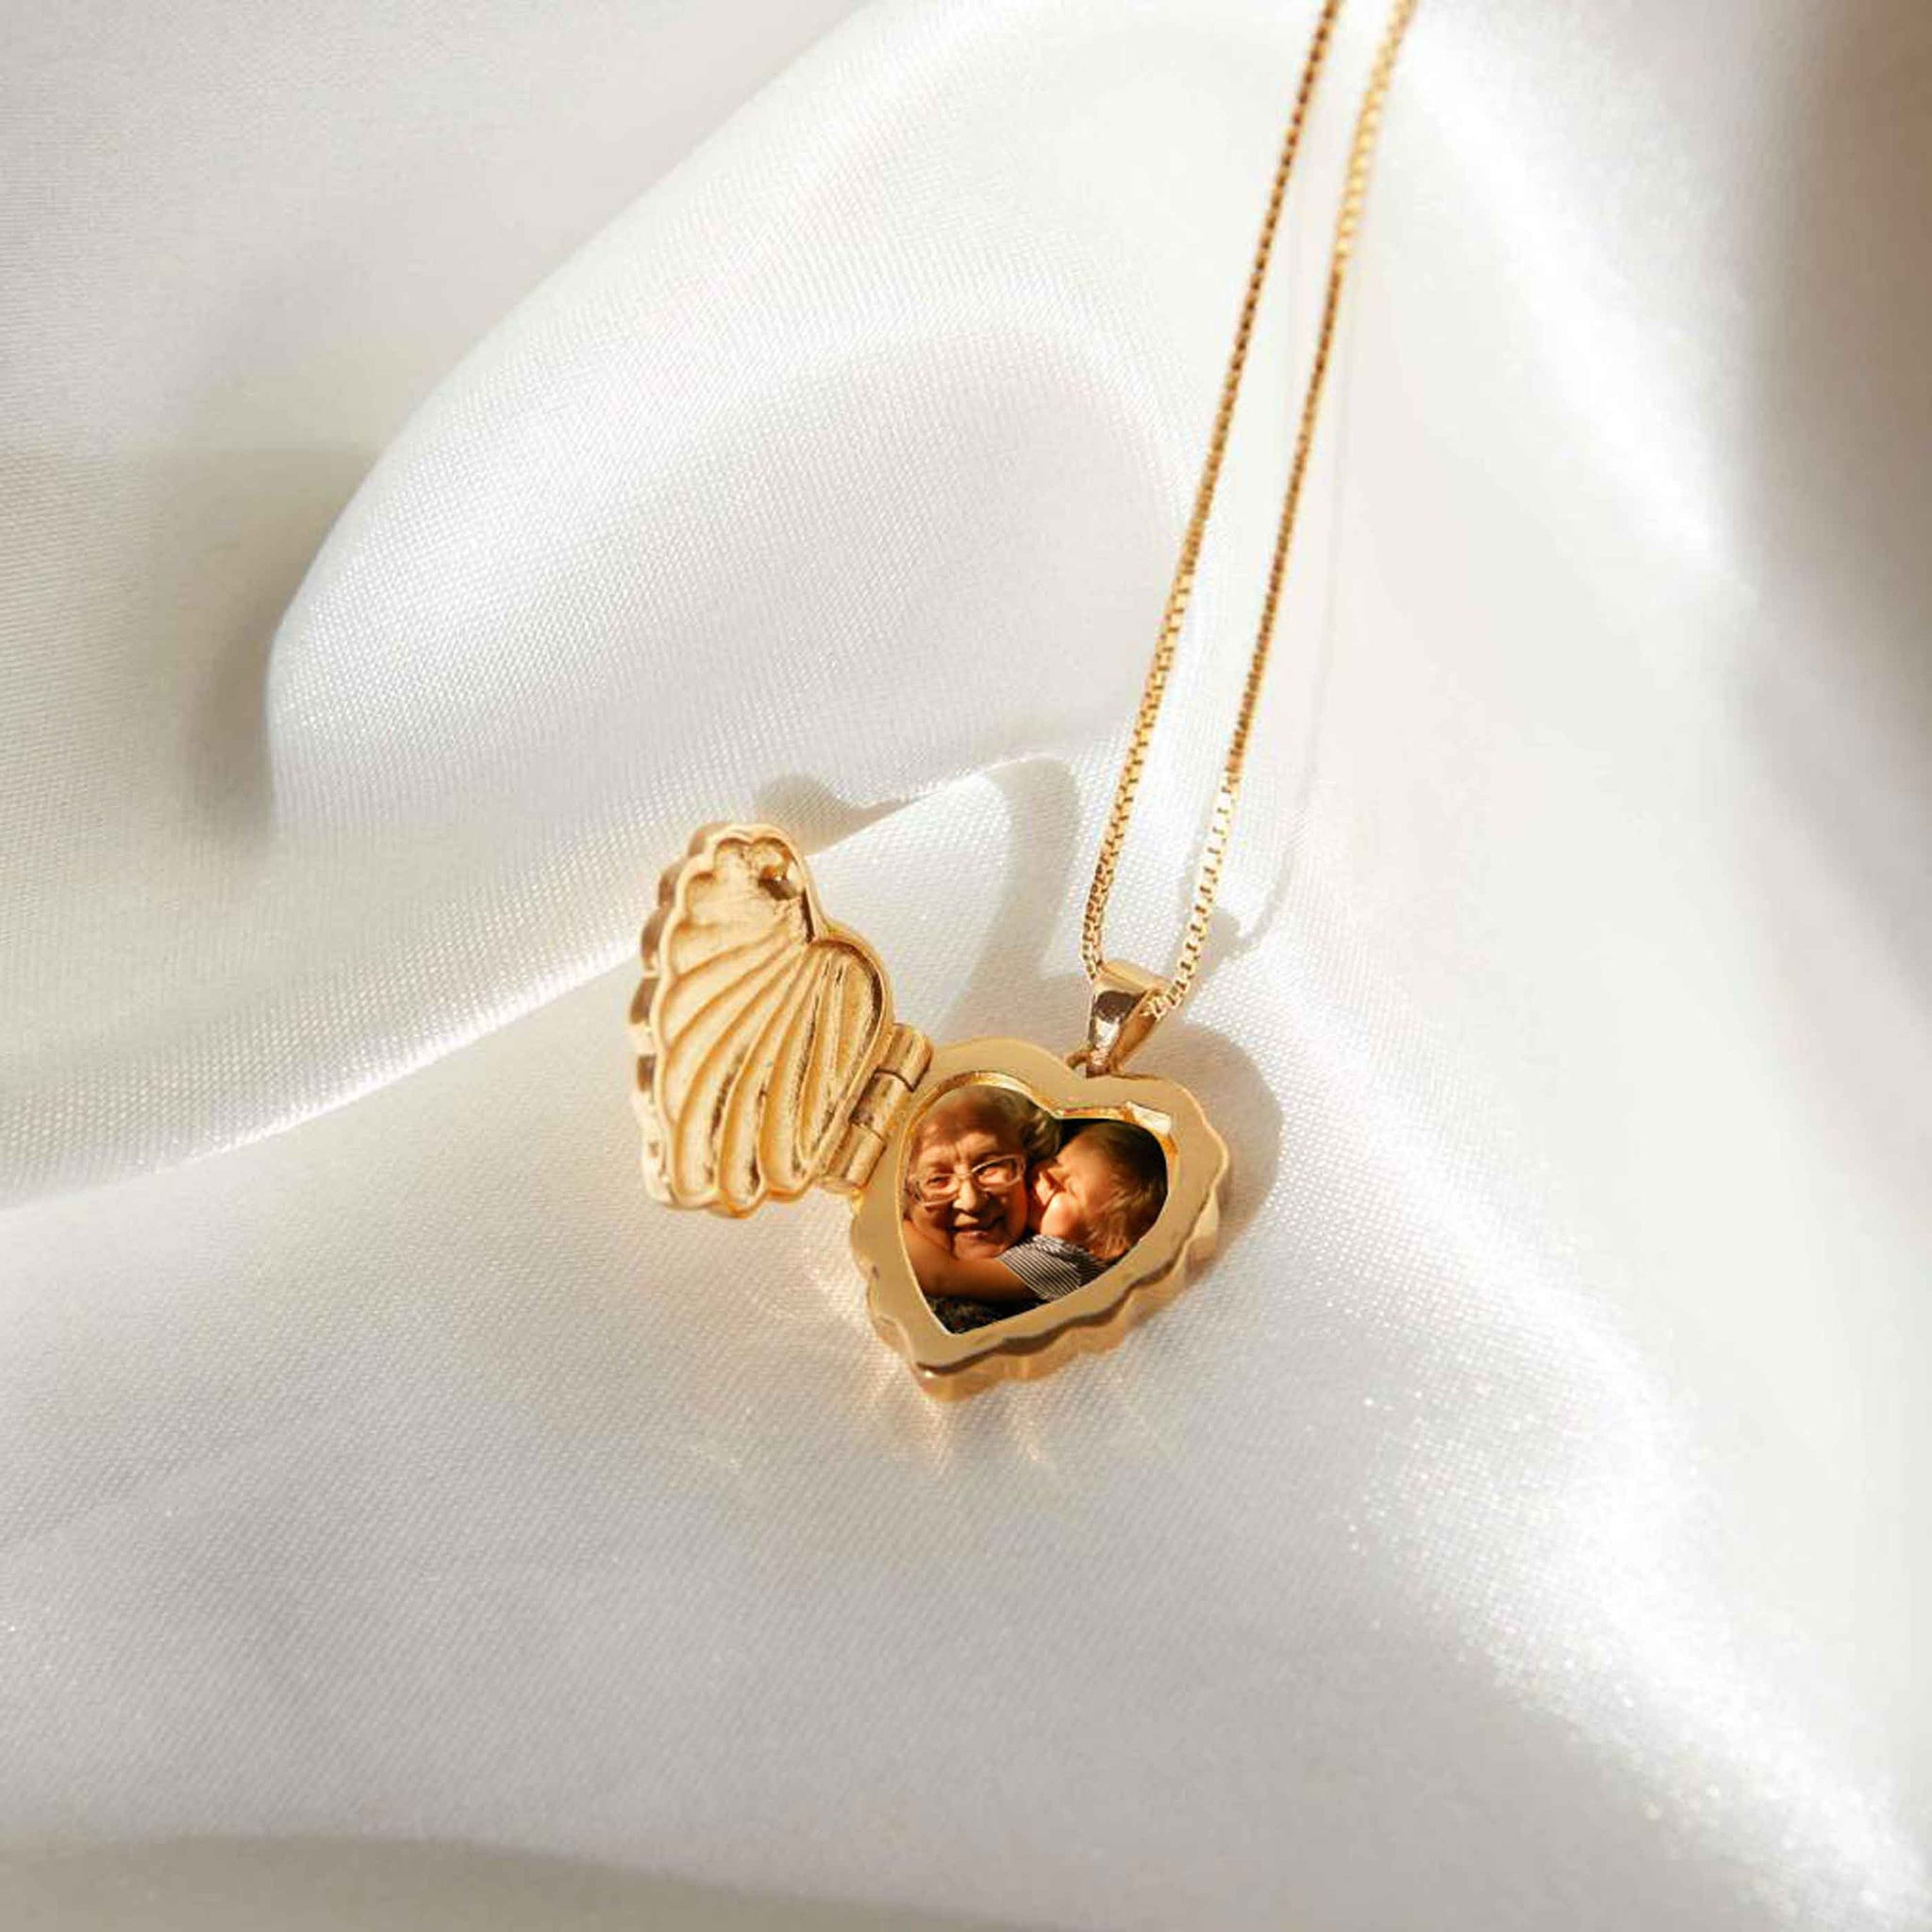 Wreath Locket Pendant Necklace in Gold